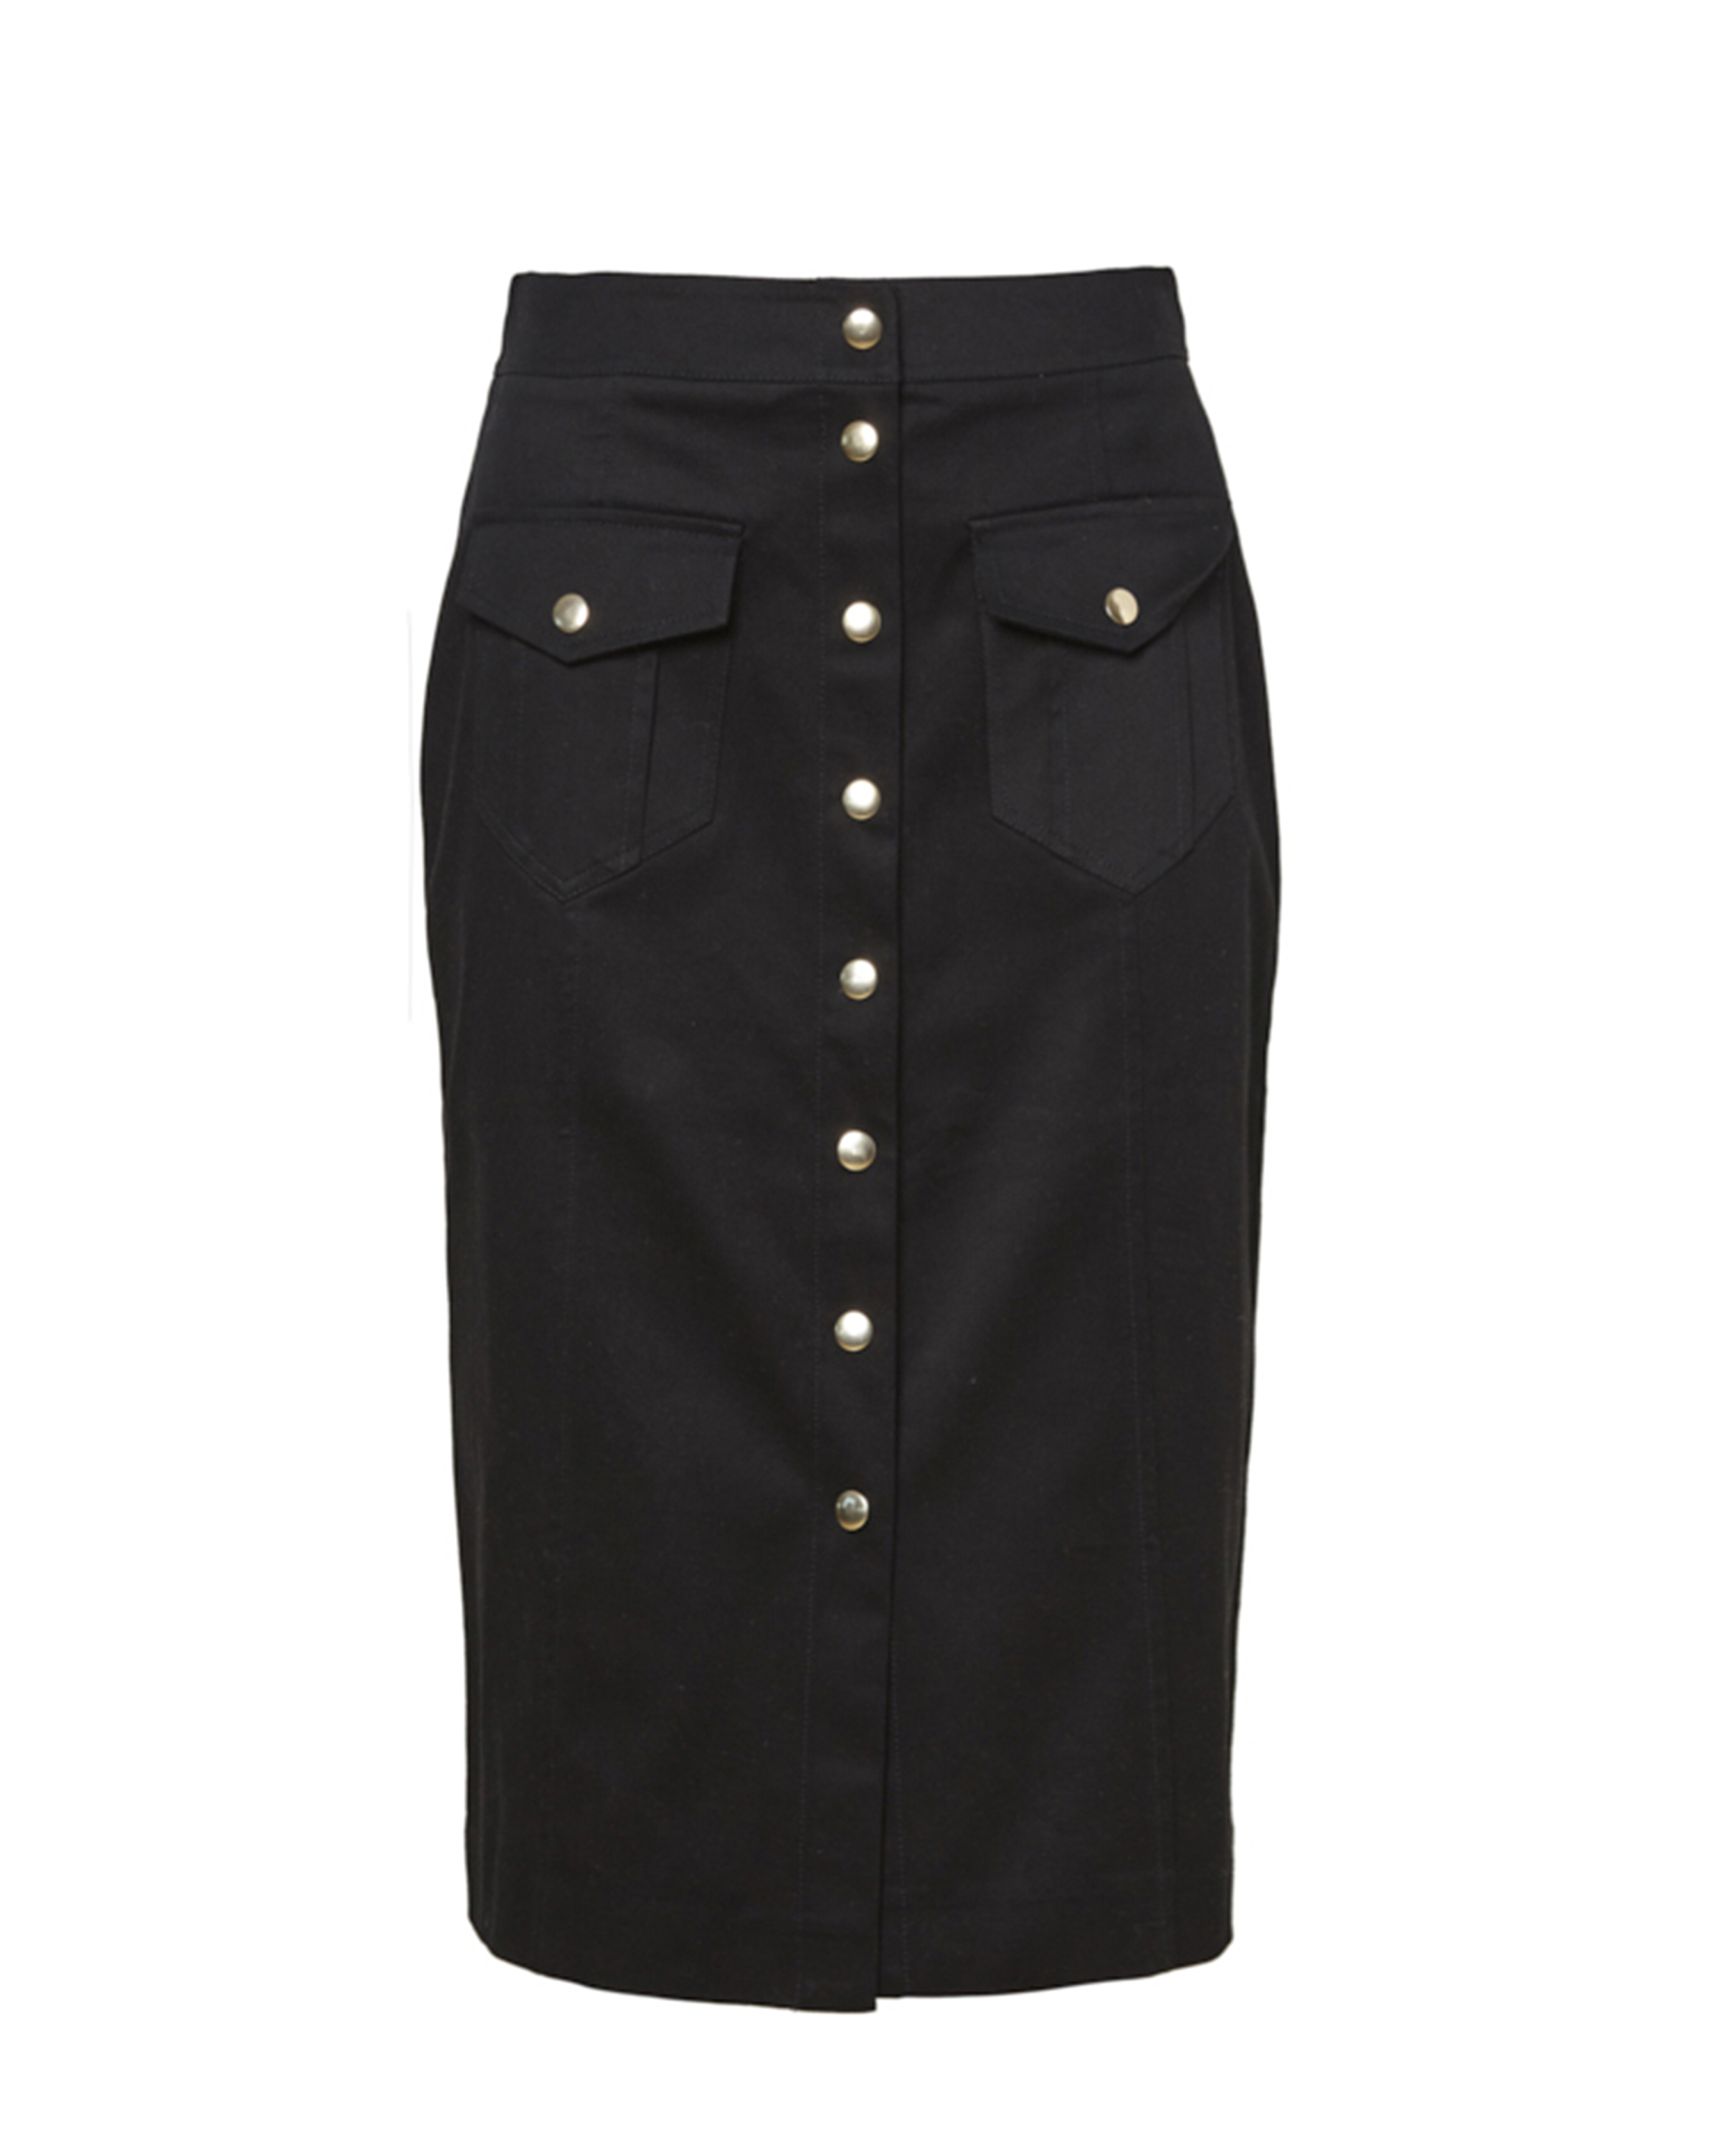 Rika 32 - Ruby Dome Skirt - Black